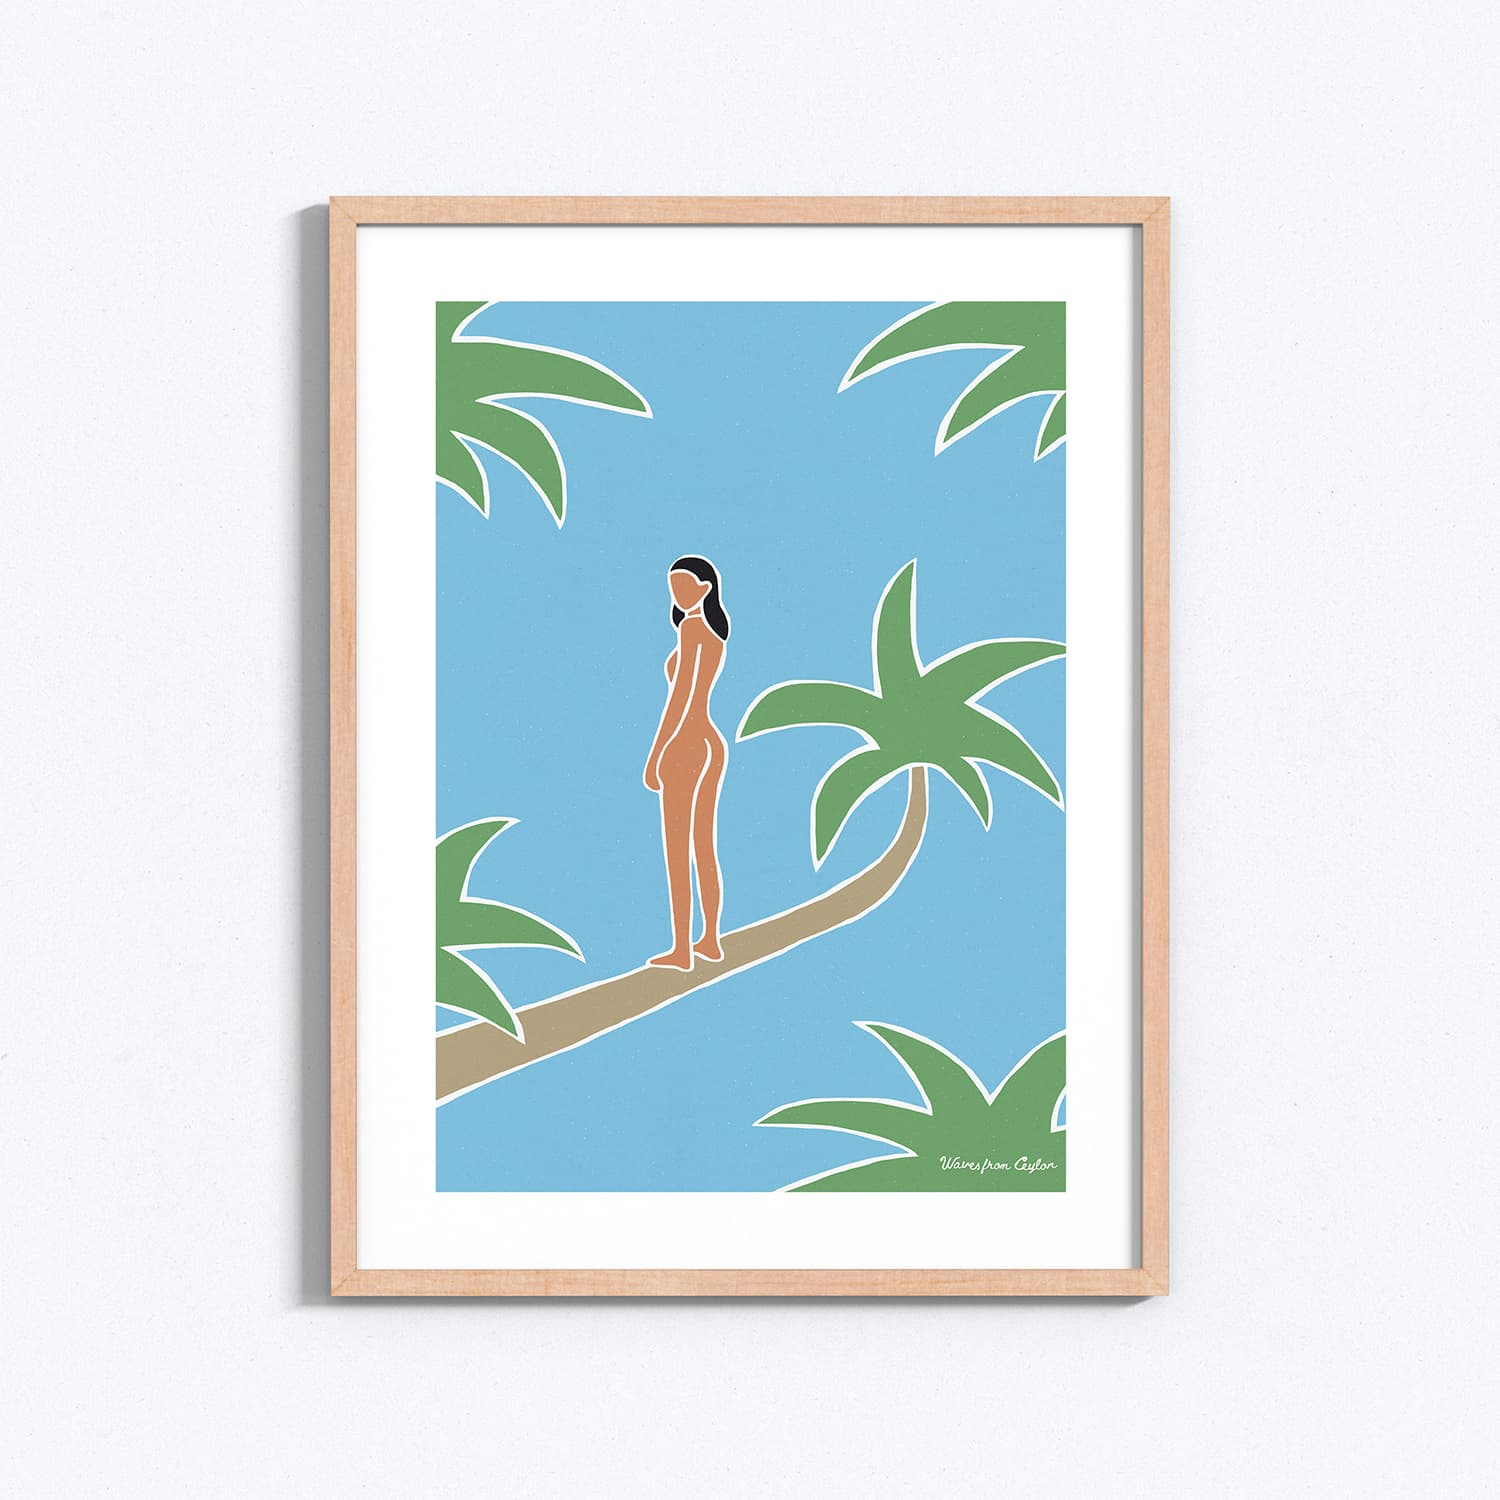 My life in the palm trees - Illustration - Waves from Ceylon